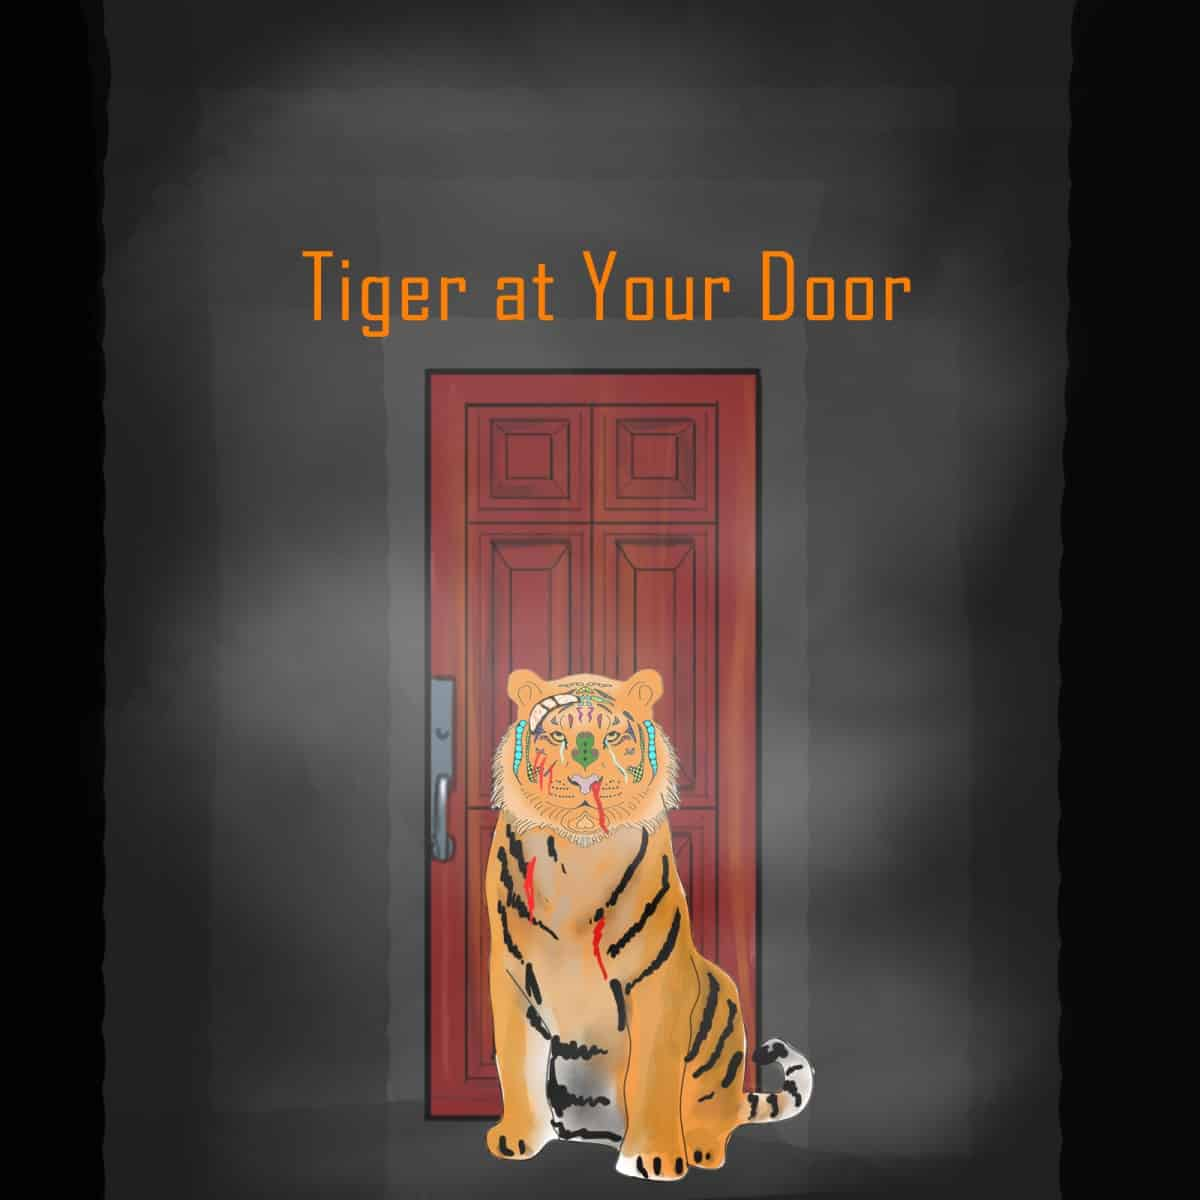 & Tiger at Your Door | Purely Animal Welfare Songs